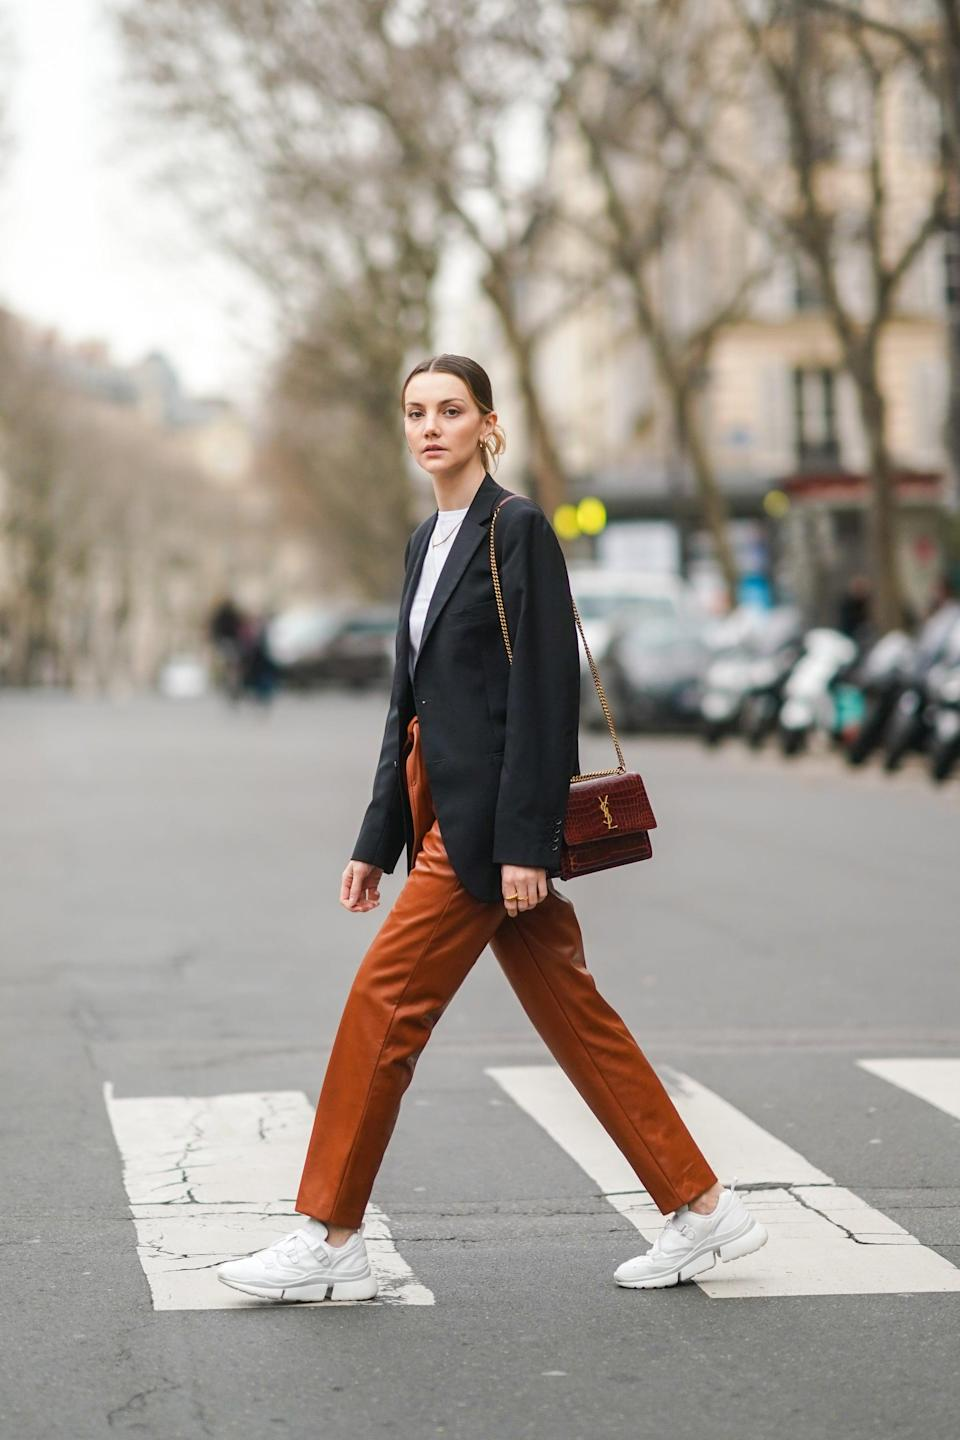 """<p>A must have for any fashionable wardrobe, the leather trouser now comes in a variety of <a href=""""https://www.popsugar.com/fashion/vegan-leather-shopping-guide-47403860"""" class=""""link rapid-noclick-resp"""" rel=""""nofollow noopener"""" target=""""_blank"""" data-ylk=""""slk:vegan leathers"""">vegan leathers</a> for cruelty-free (and more-affordable!) options.</p>"""